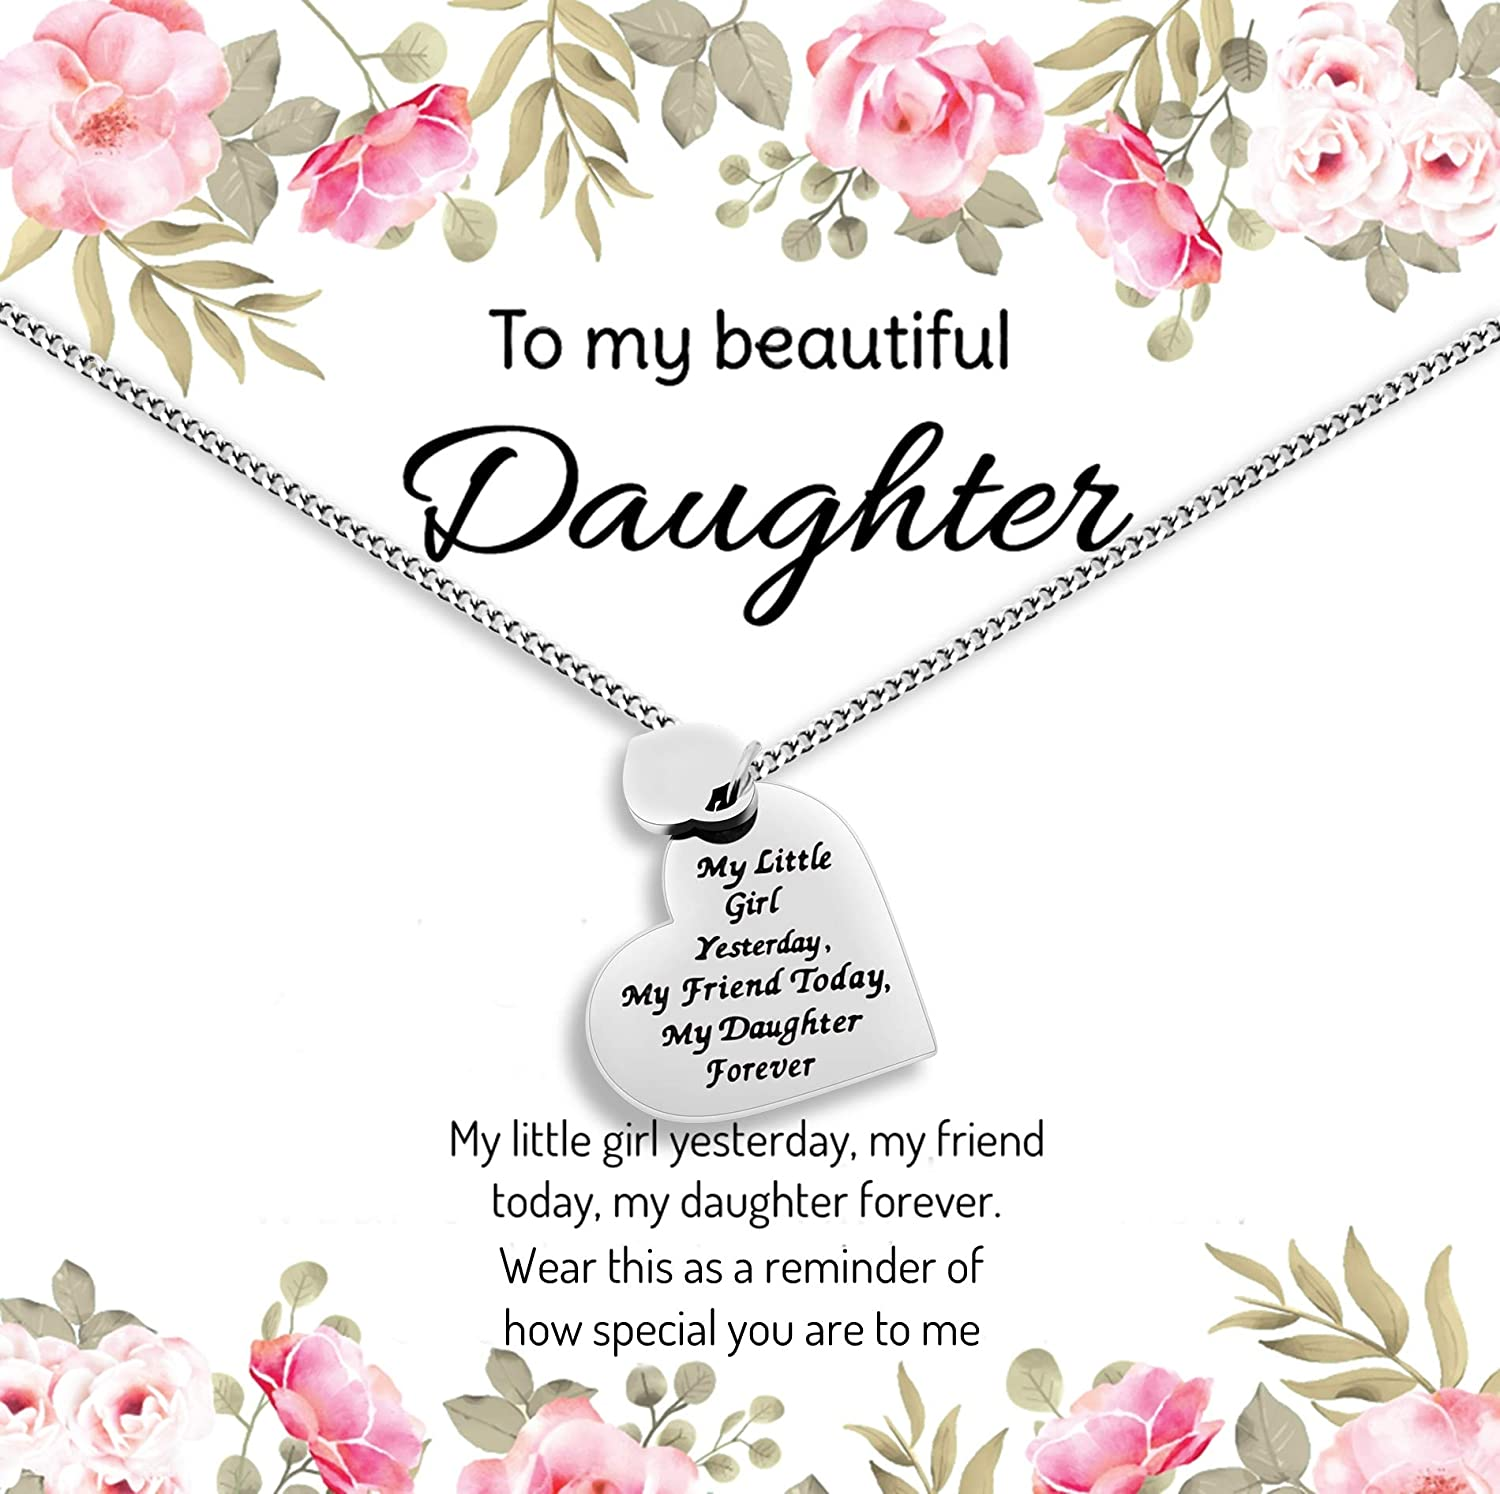 Daughter Gift from Mom or Dad - ''MY LITTLE GIRL YESTERDAY MY FRIEND TODAY MY DAUGHTER FOREVER'' Heart Pendant Necklace for Women & Teen Girls